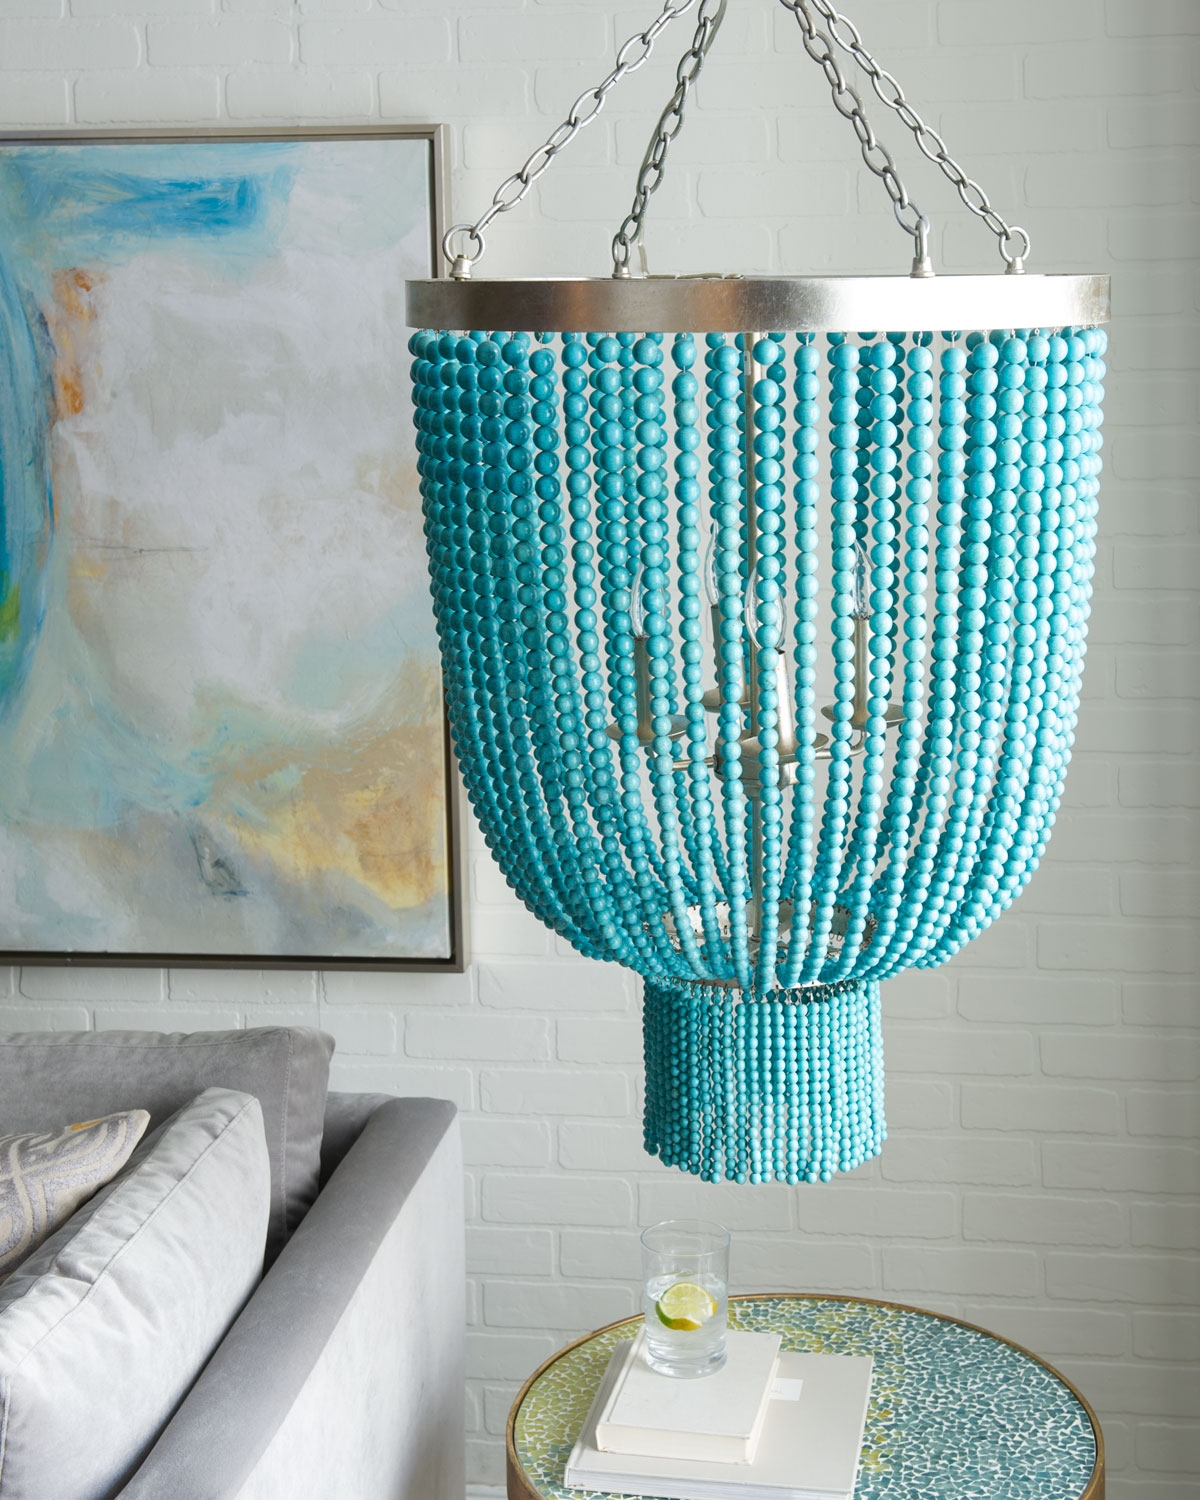 Chandeliers Everything Turquoise Regarding Turquoise Chandelier Lamp Shades (Image 10 of 25)